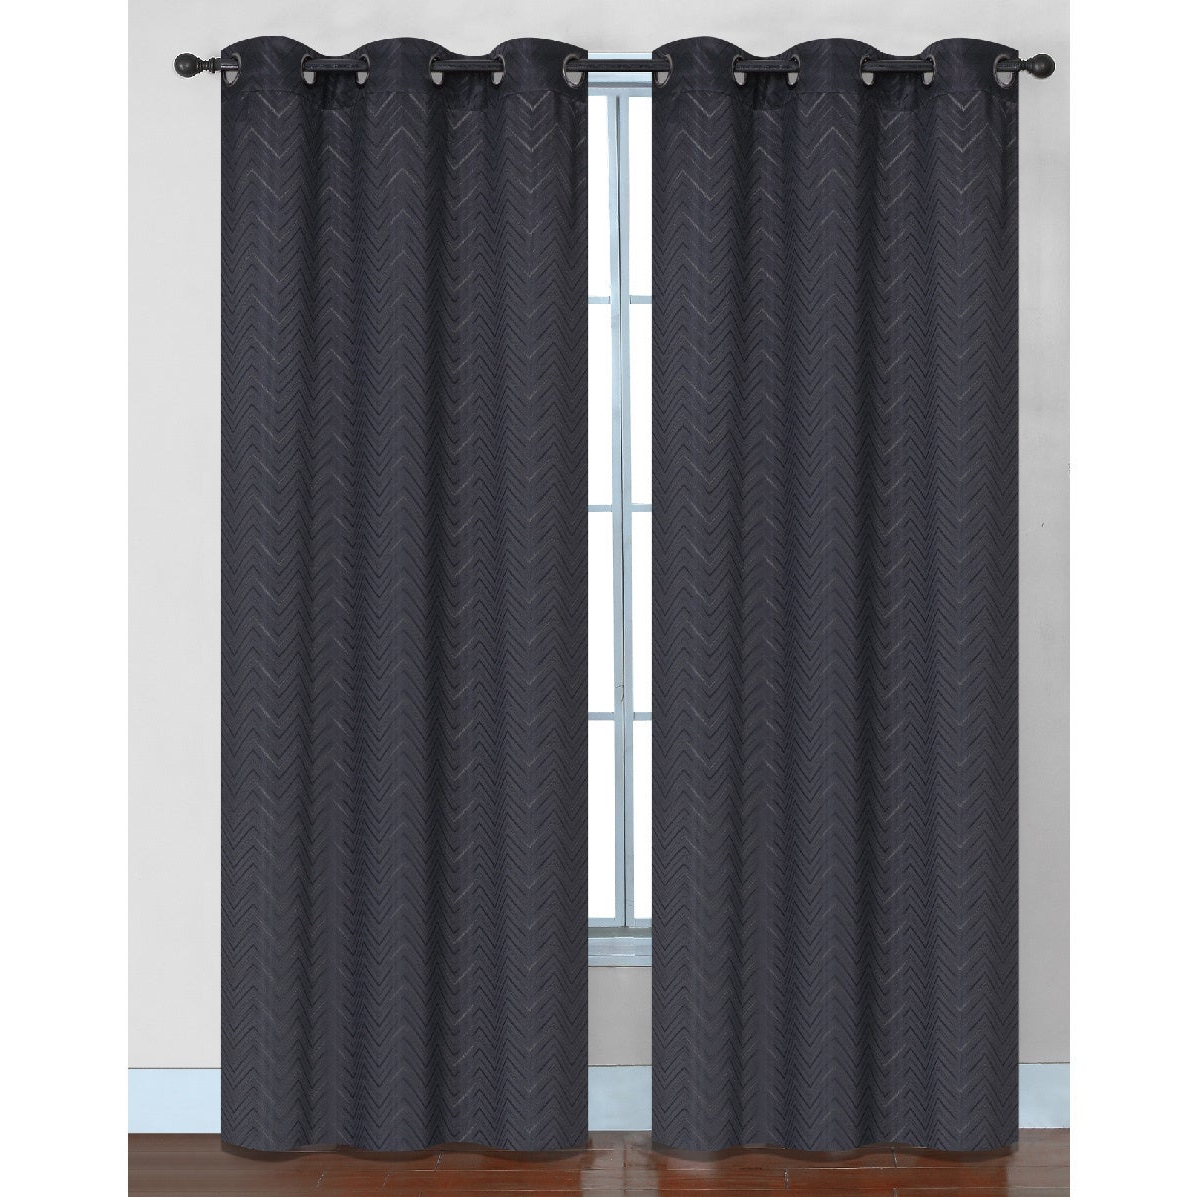 Most Current Chevron Blackout Grommet Curtain Panels For Chevron Faux Silk Blackout Grommet Top 84 Inch Curtain Panel Pair – 76 X 84 (Gallery 8 of 20)